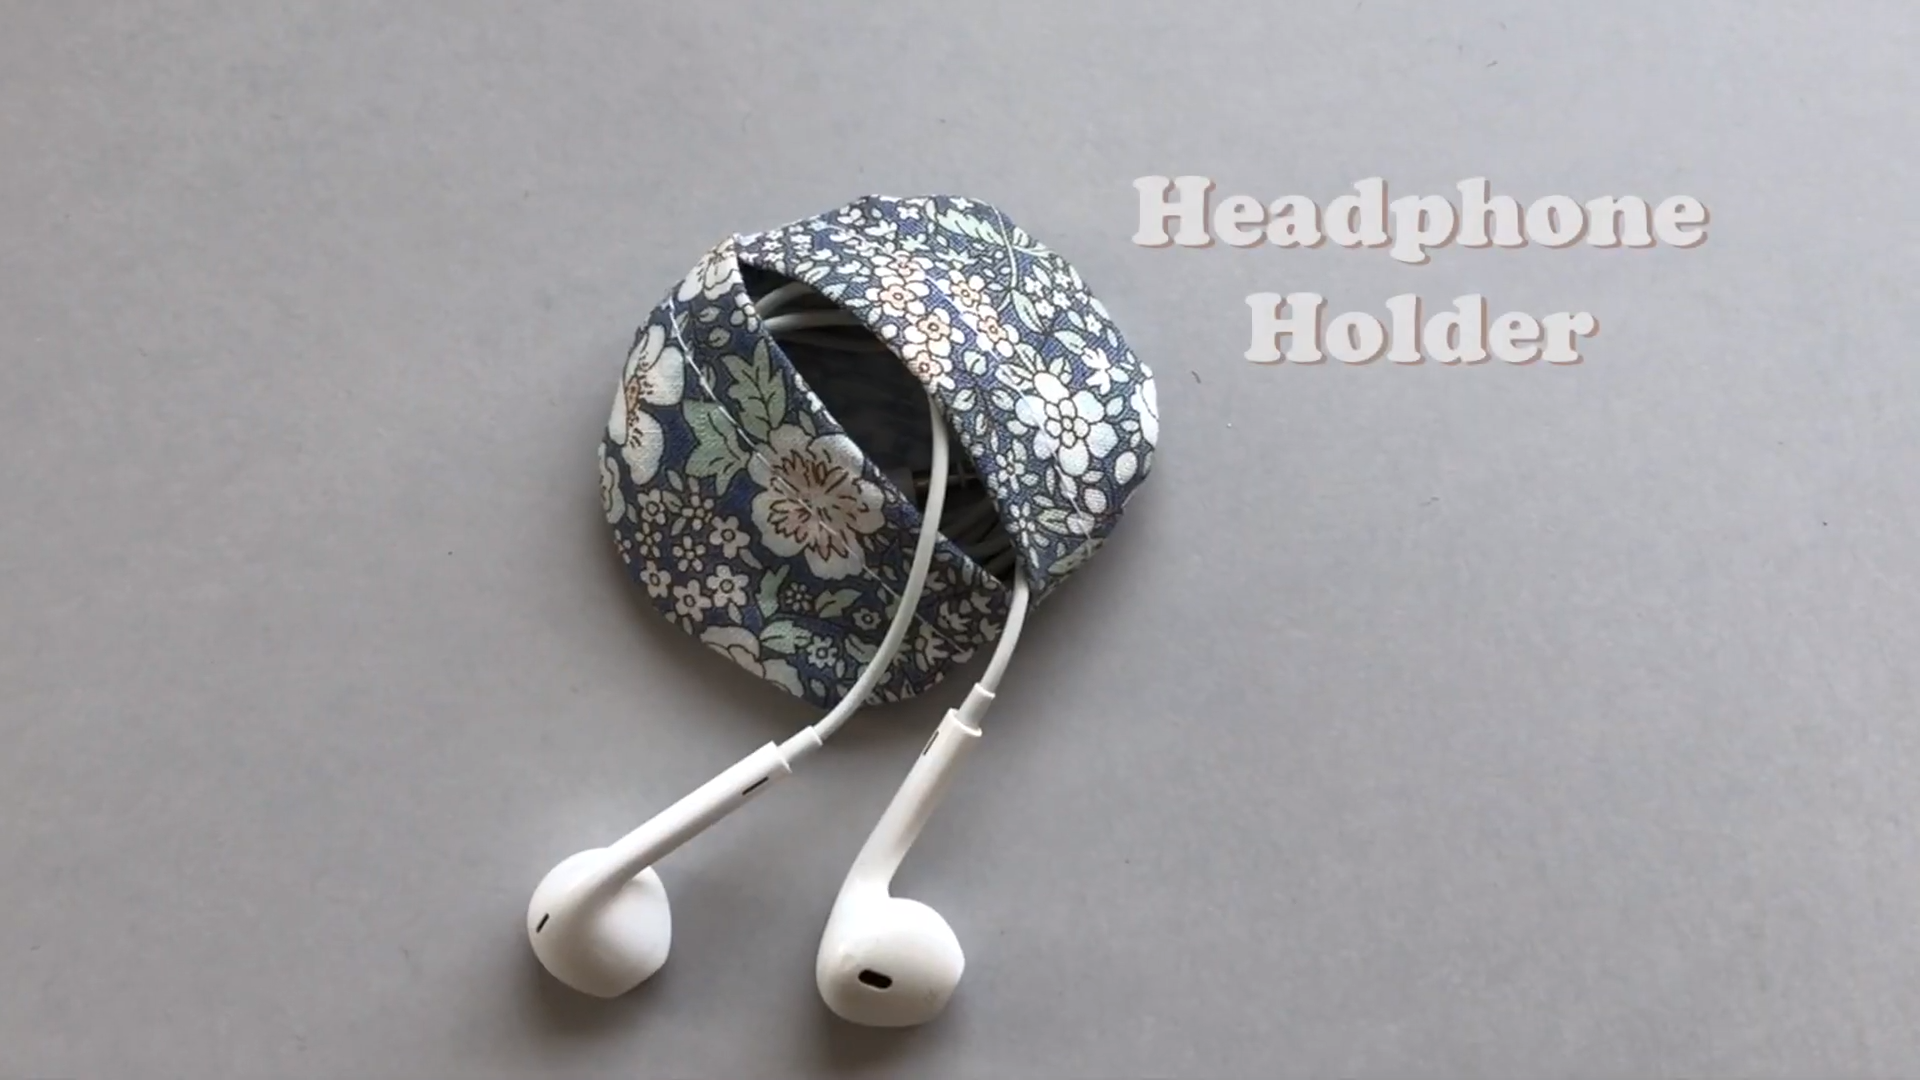 5 sewing projects to make in under 10 minutes  headphone case